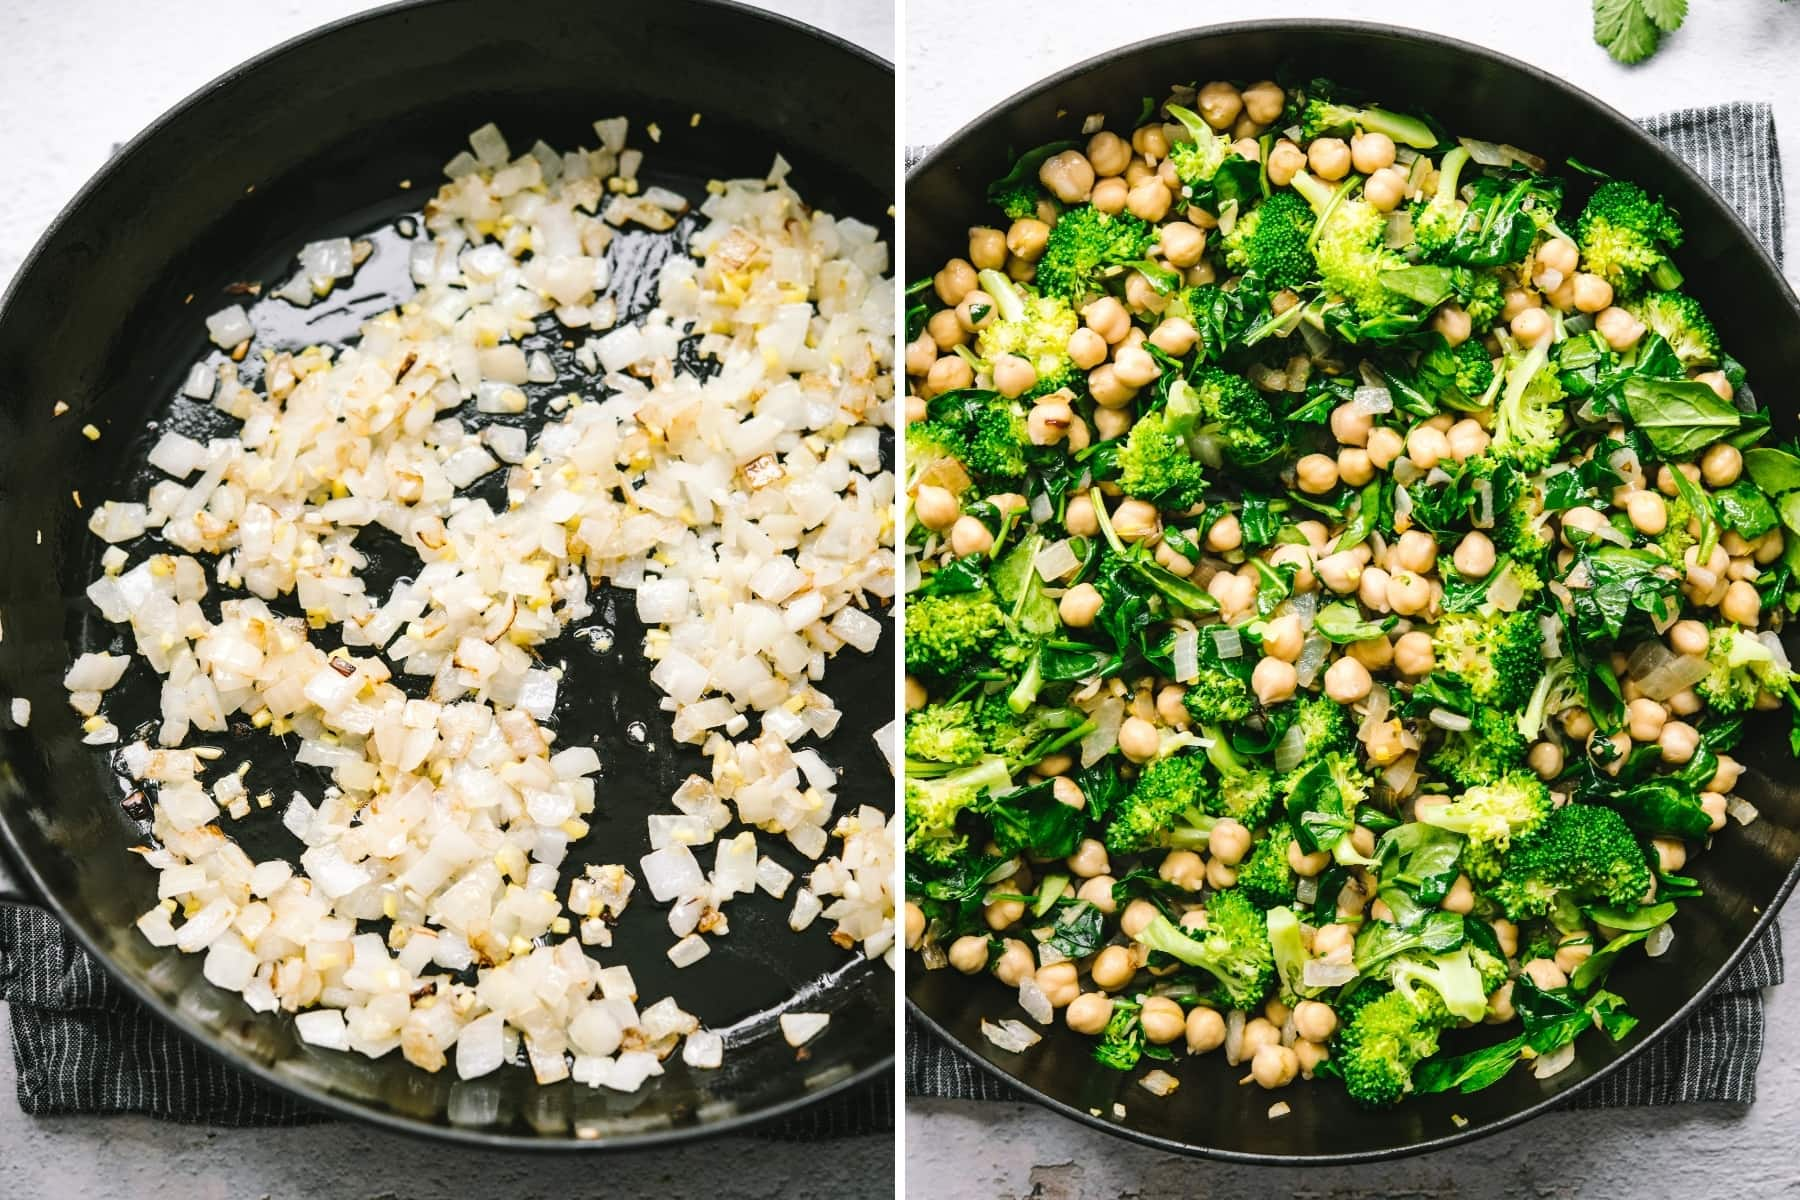 sautéed onions, garlic and ginger and sautéed broccoli, spinach and chickpeas.